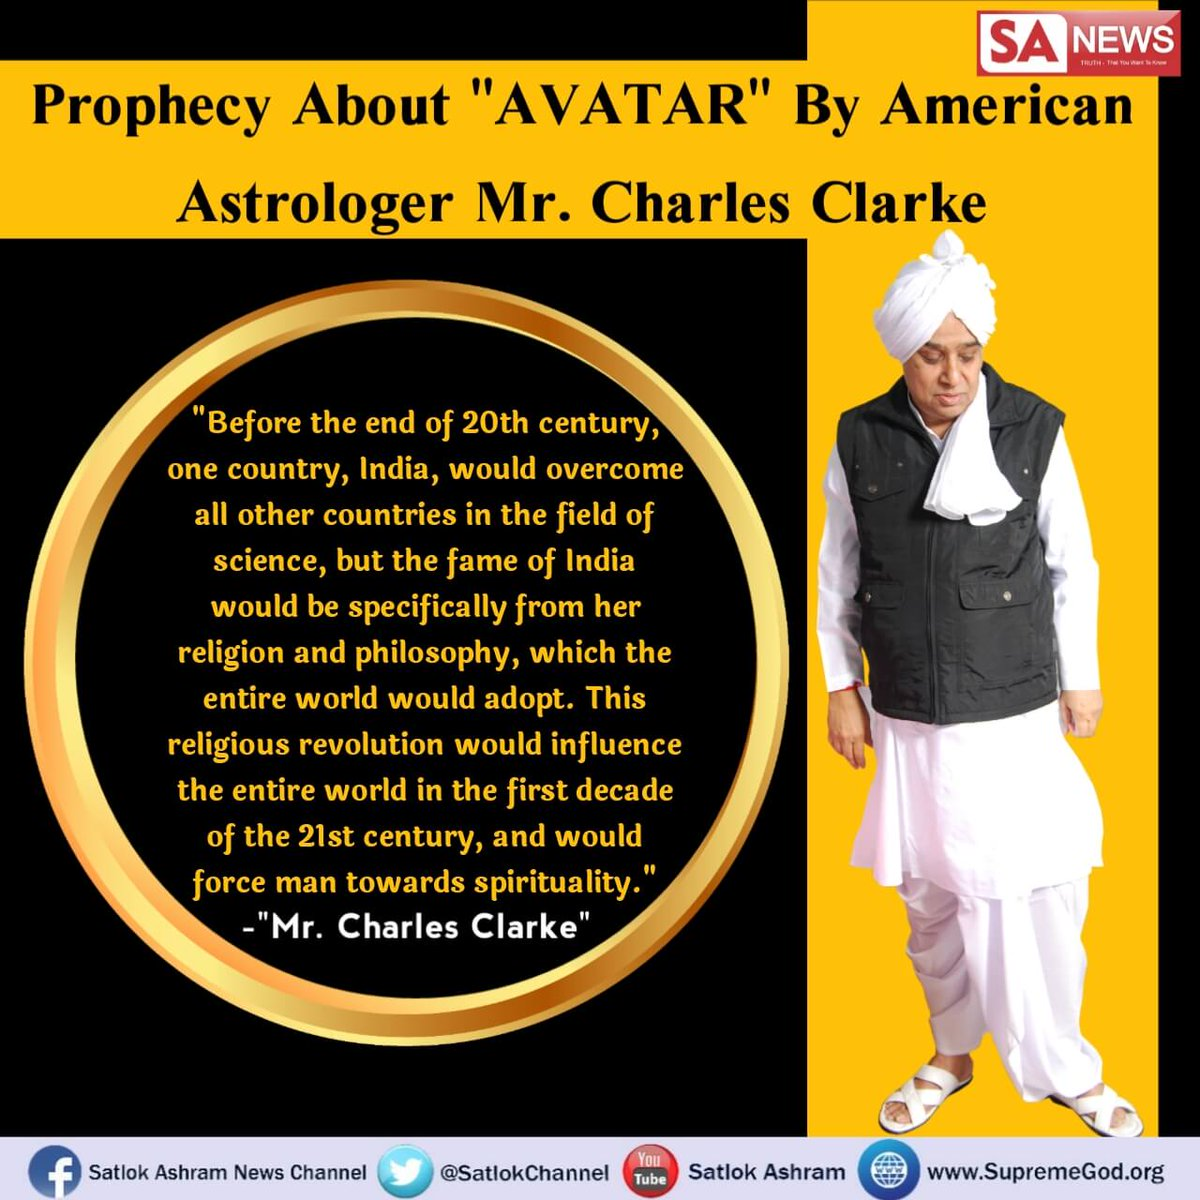 """#GodMorningWednesday #WednesdayWisdom Prophecy about """"AVATAR"""" By American Astrologer Mr. Charles Clarke   For more information watch Sadhna Tv At 7:30pm pic.twitter.com/LociRZik5N"""